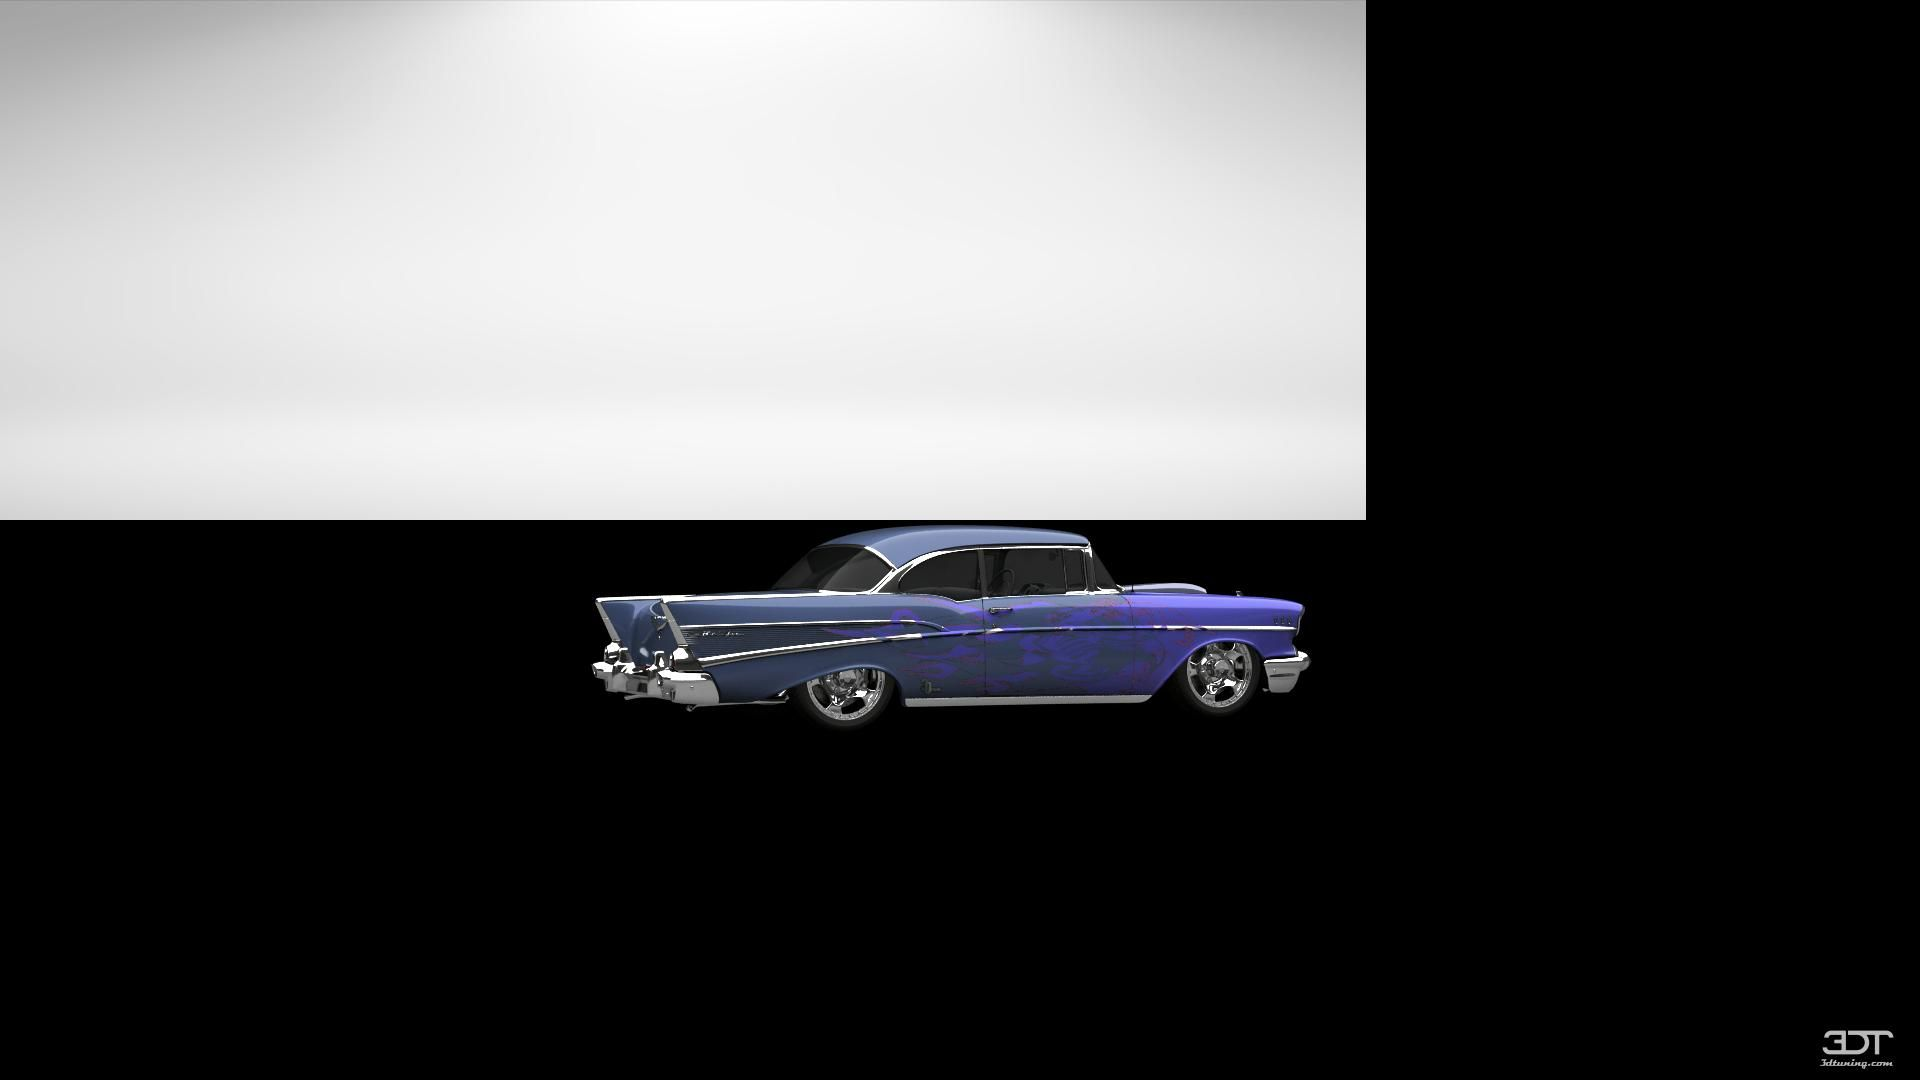 Checkout my tuning Chevrolet BelAir 1957 at 3DTuning 3dtuning